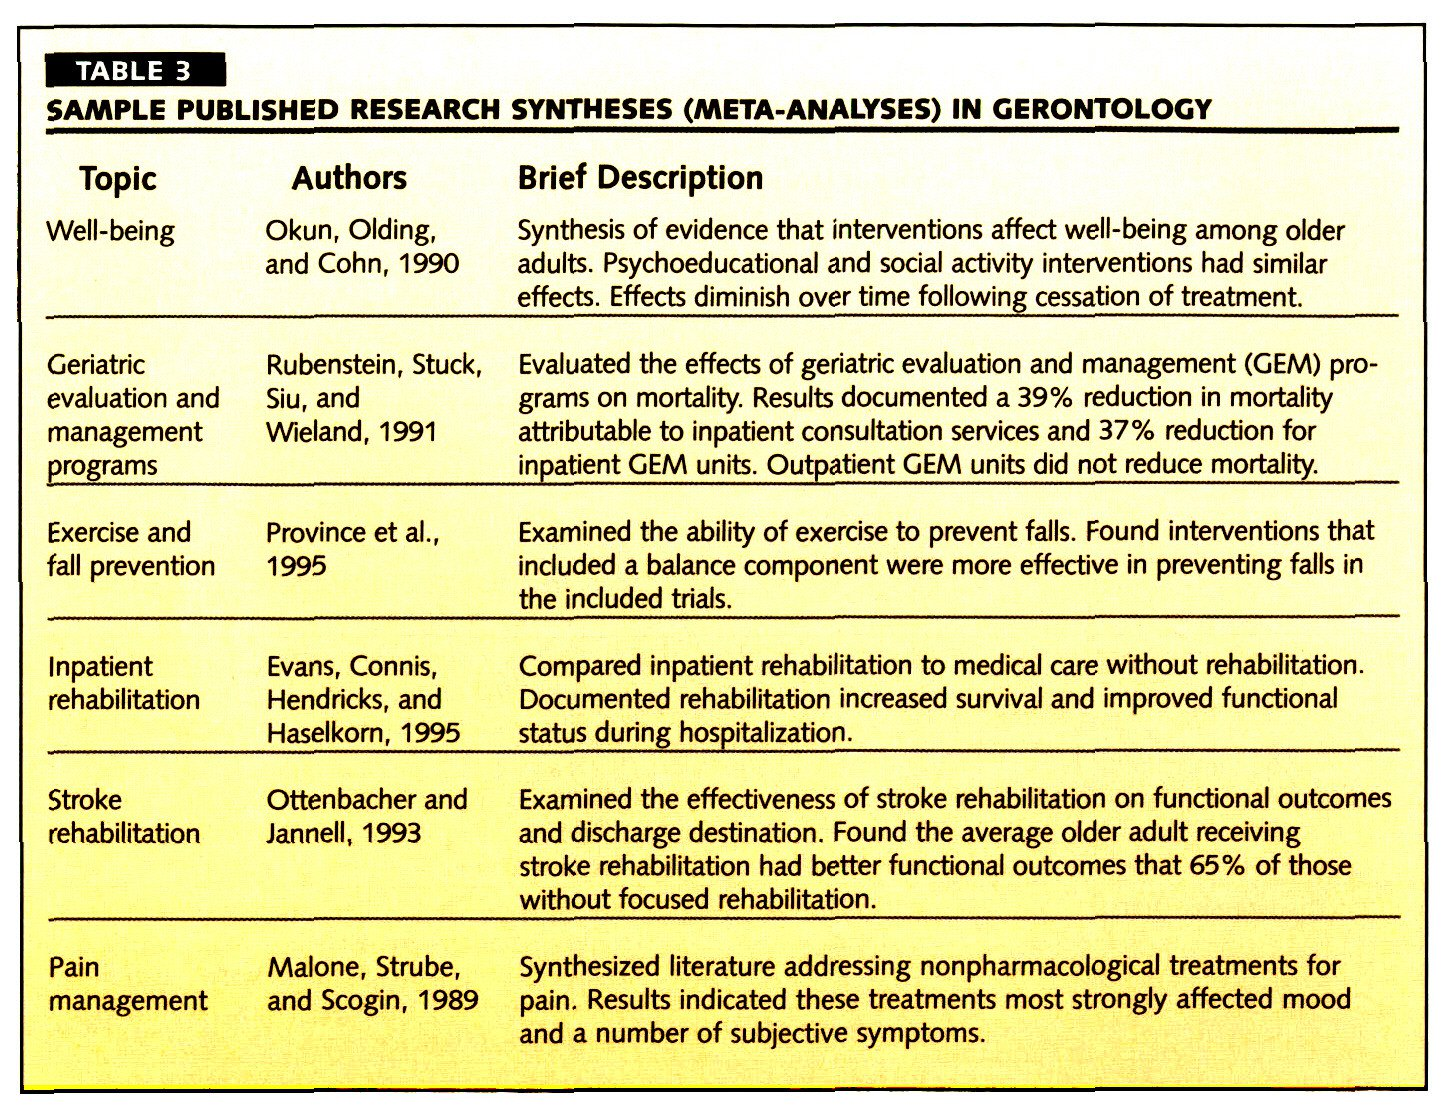 TABLE 3SAMPLE PUBLISHED RESEARCH SYNTHESES (META- AN ALYSE S) IN GERONTOLOGY